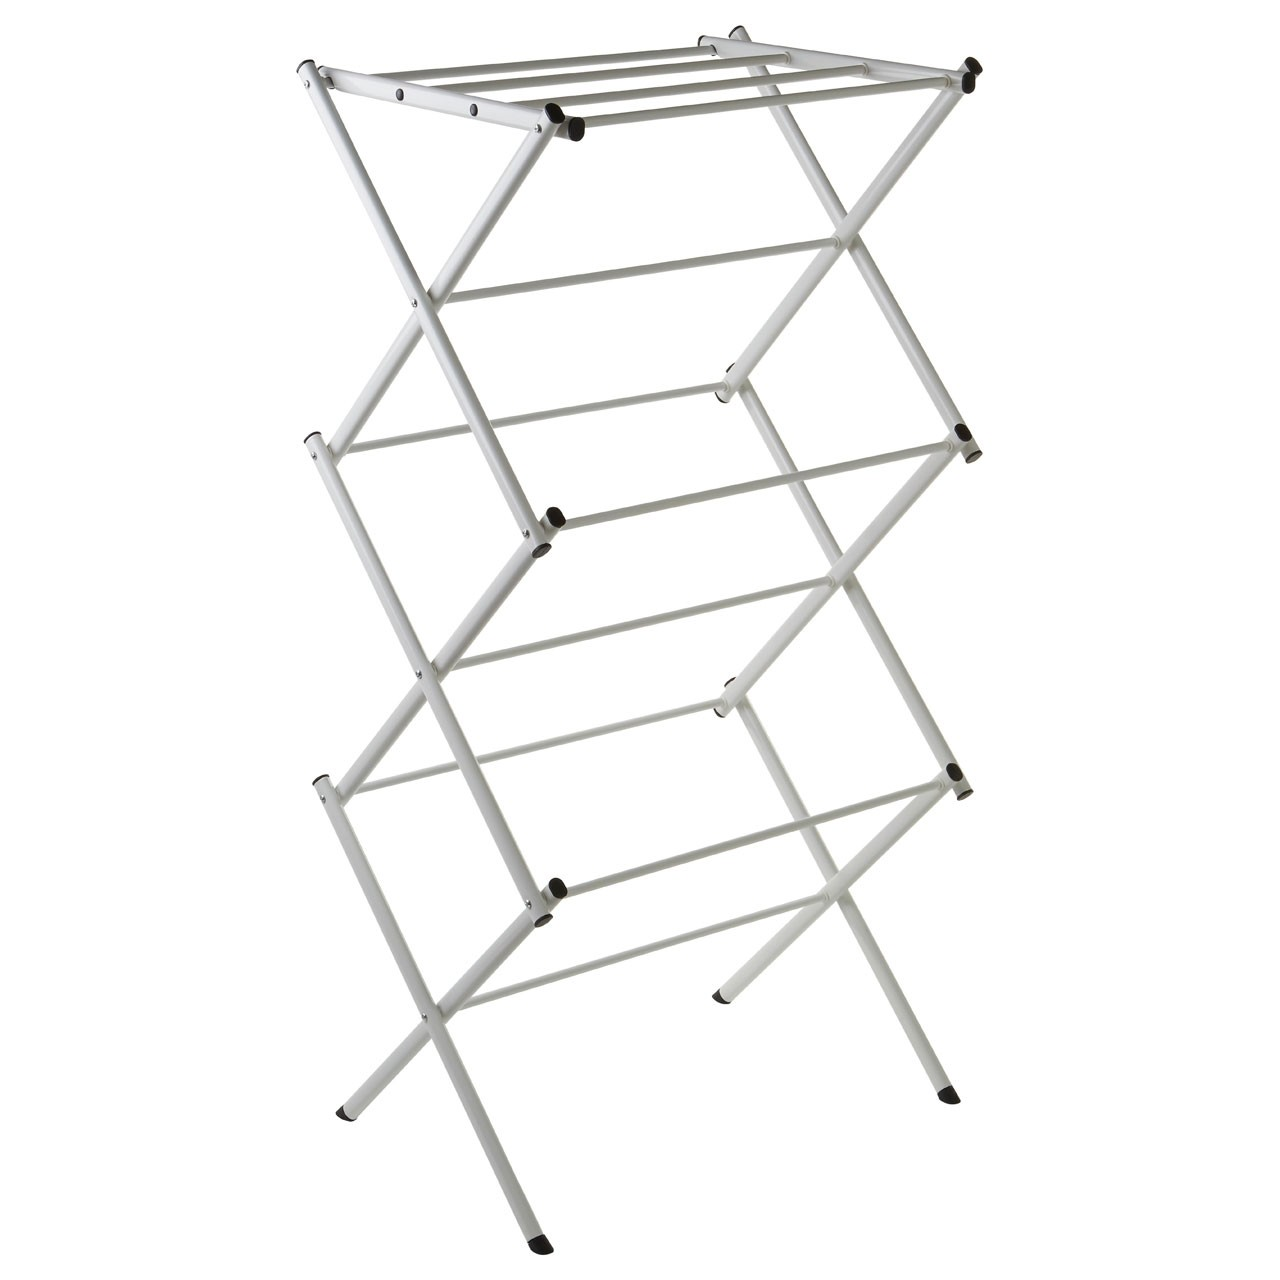 Prime Furnishing 3-Tier Folding Clothes Dryer- White